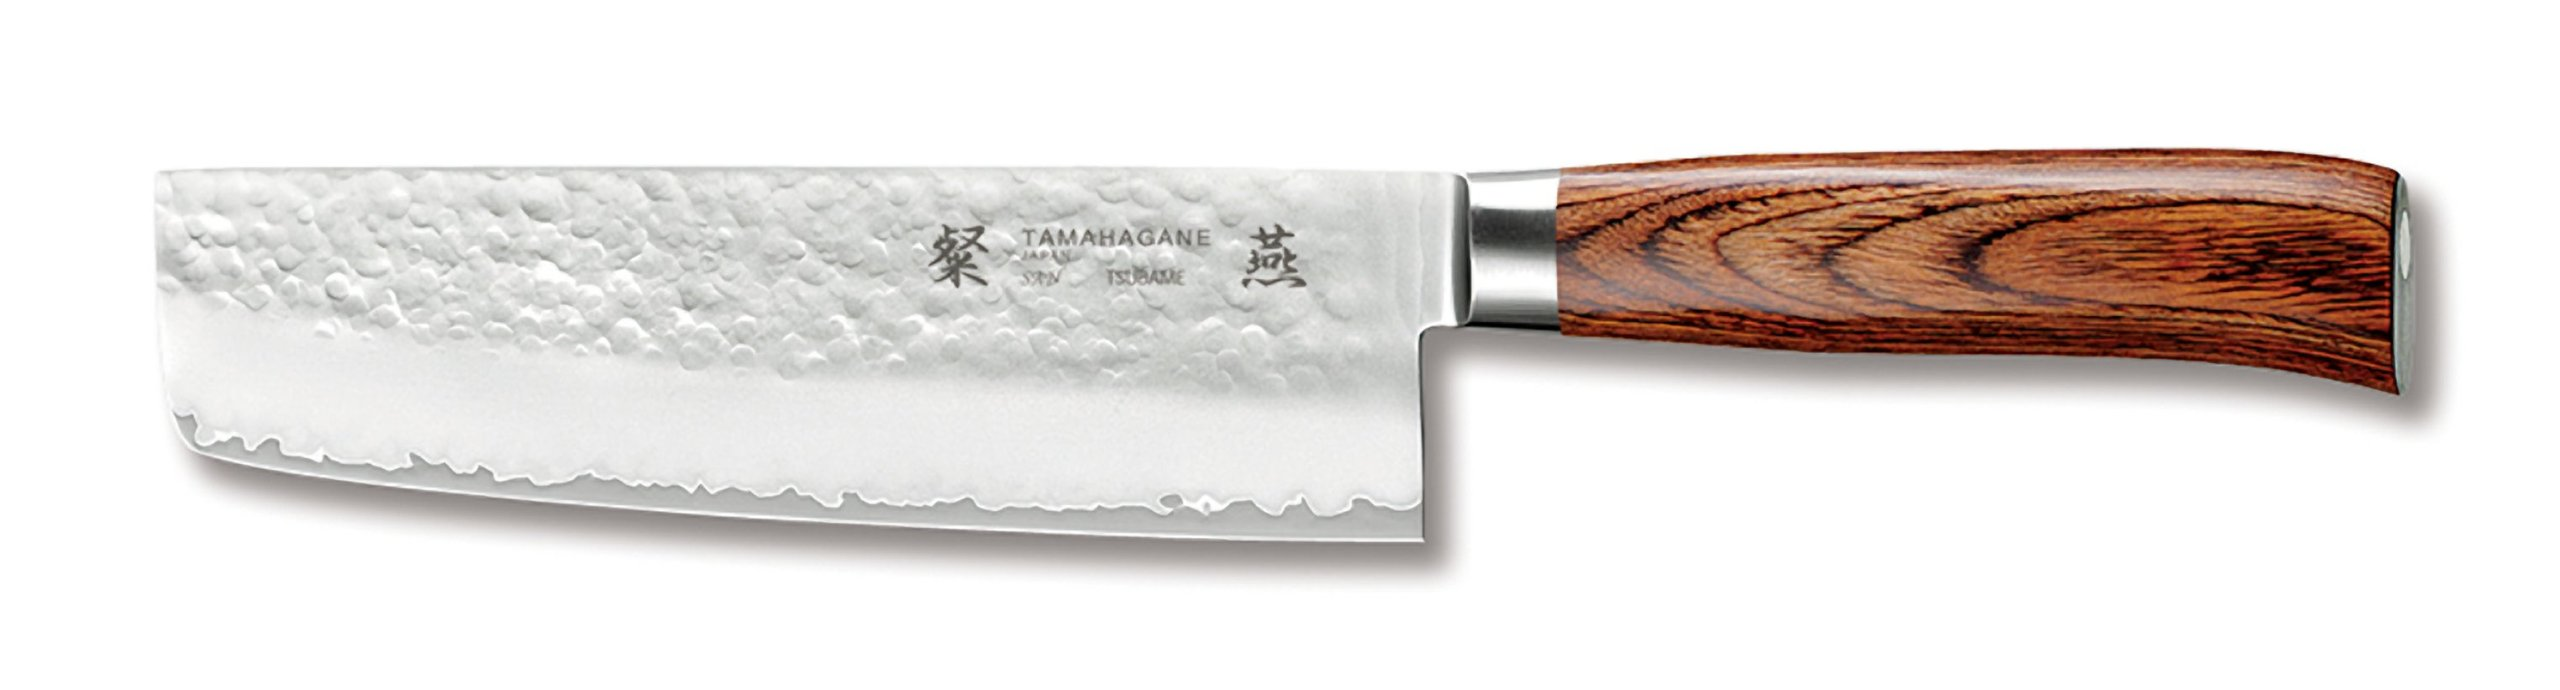 Tamahagane San Tsubame Wood SNH-1165 - 7 inch, 180mm Nakiri Vegetable Knife